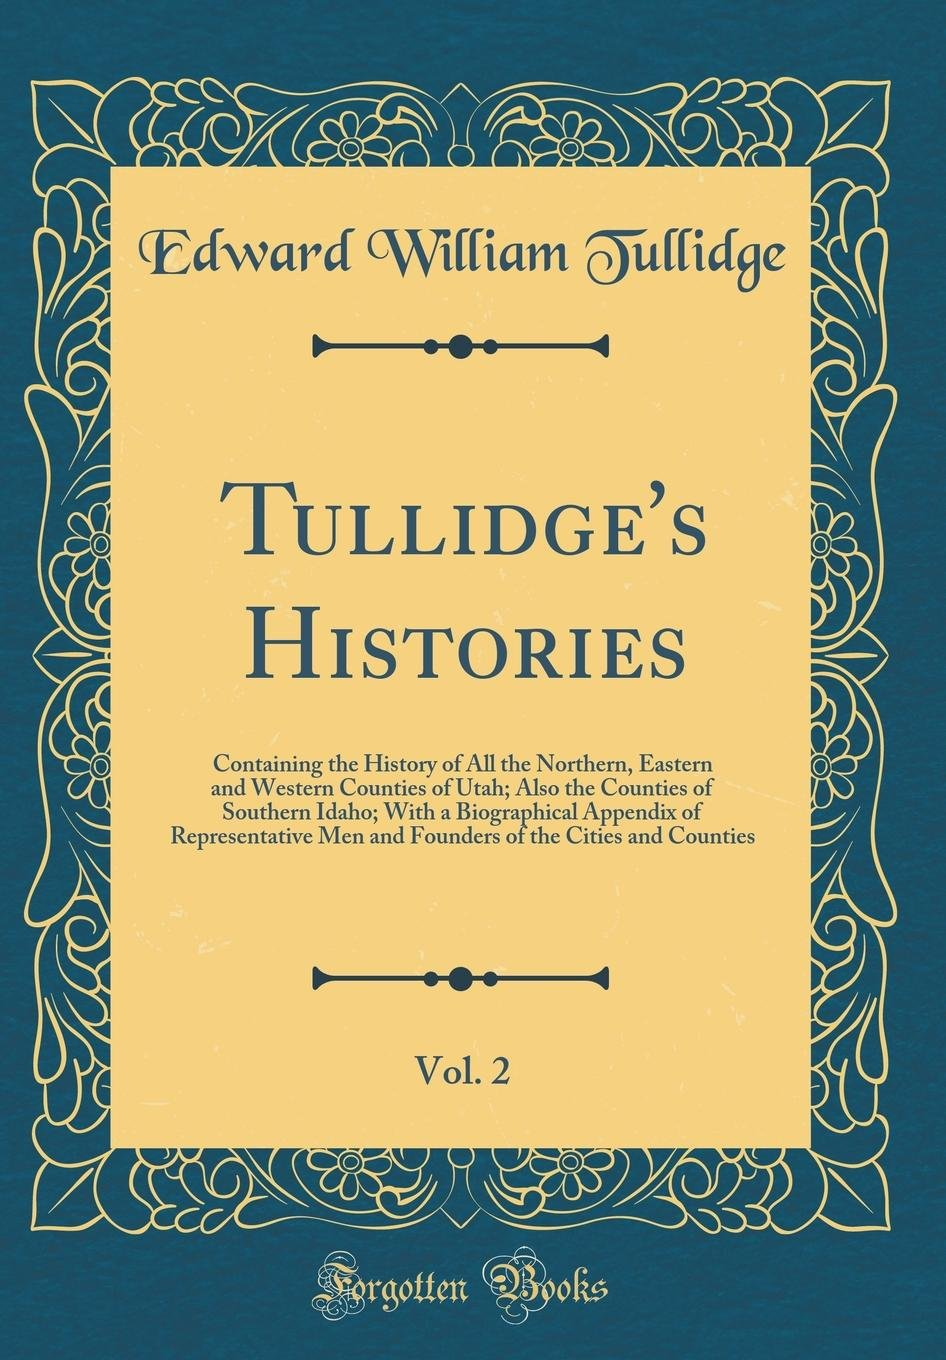 Read Online Tullidge's Histories, Vol. 2: Containing the History of All the Northern, Eastern and Western Counties of Utah; Also the Counties of Southern Idaho; ... Men and Founders of the Cities and Counties pdf